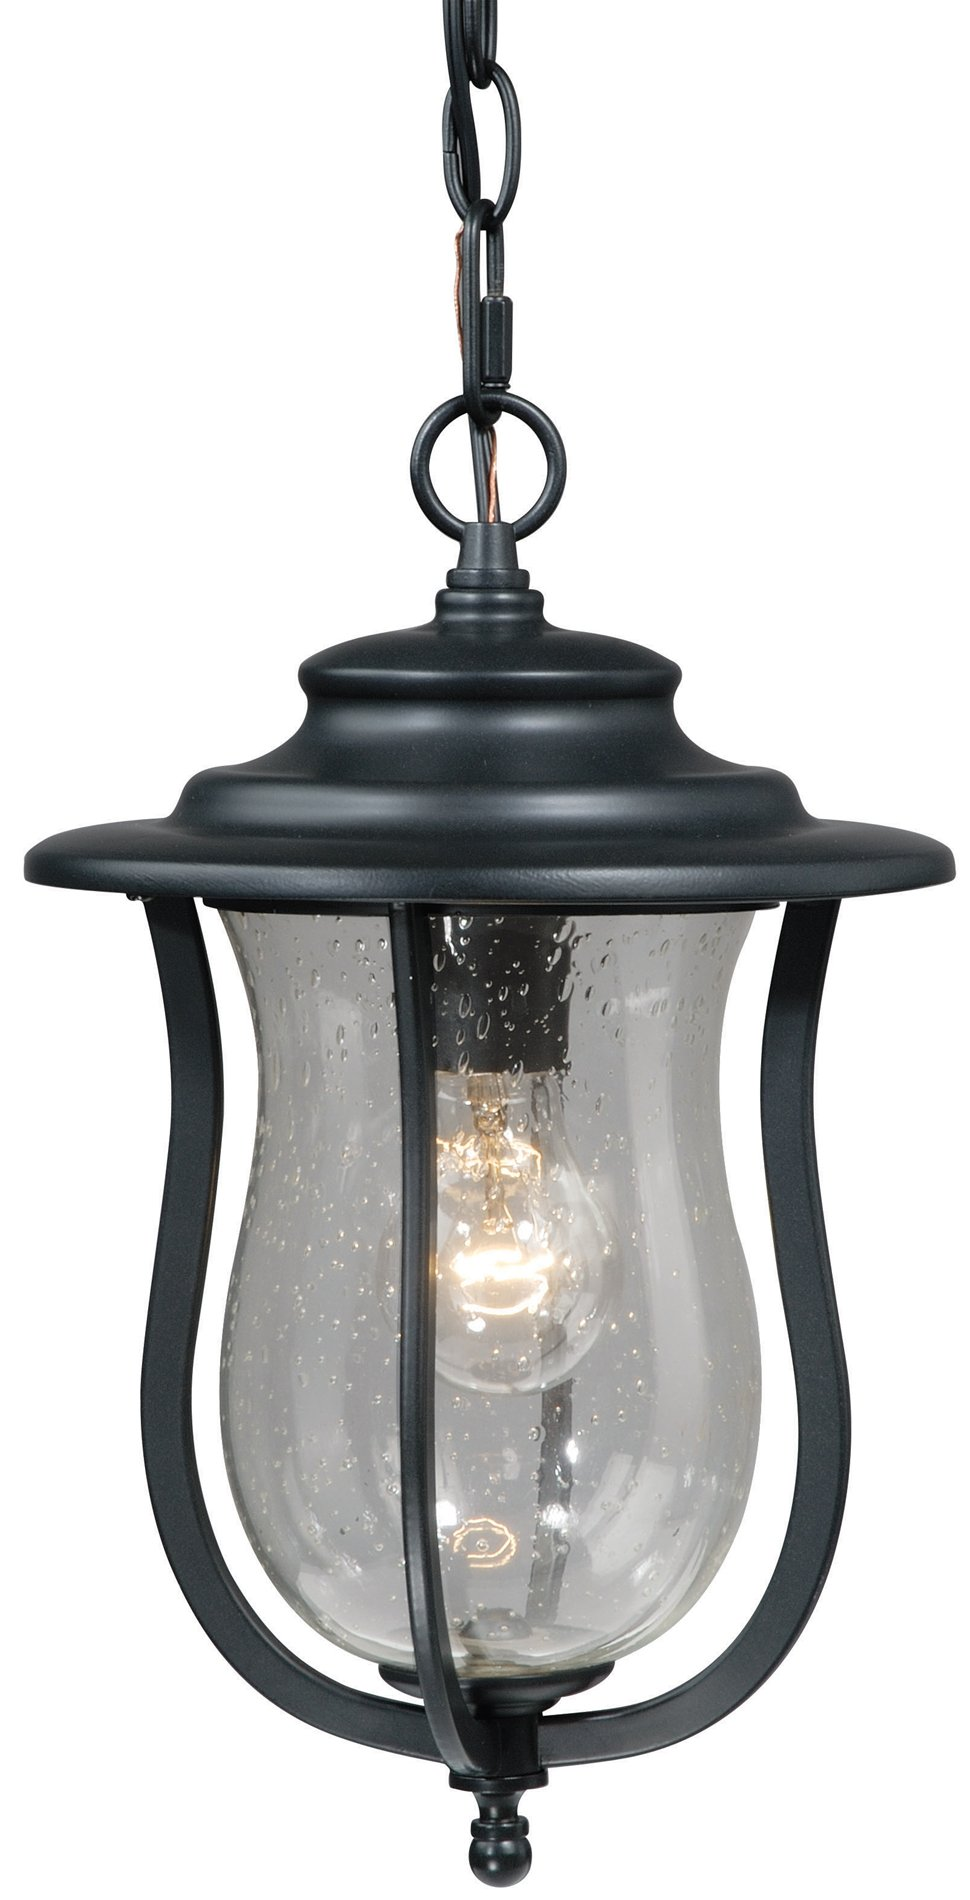 Transitional Pendant Lighting Fixtures : Vaxcel lighting t corsica transitional outdoor pendant